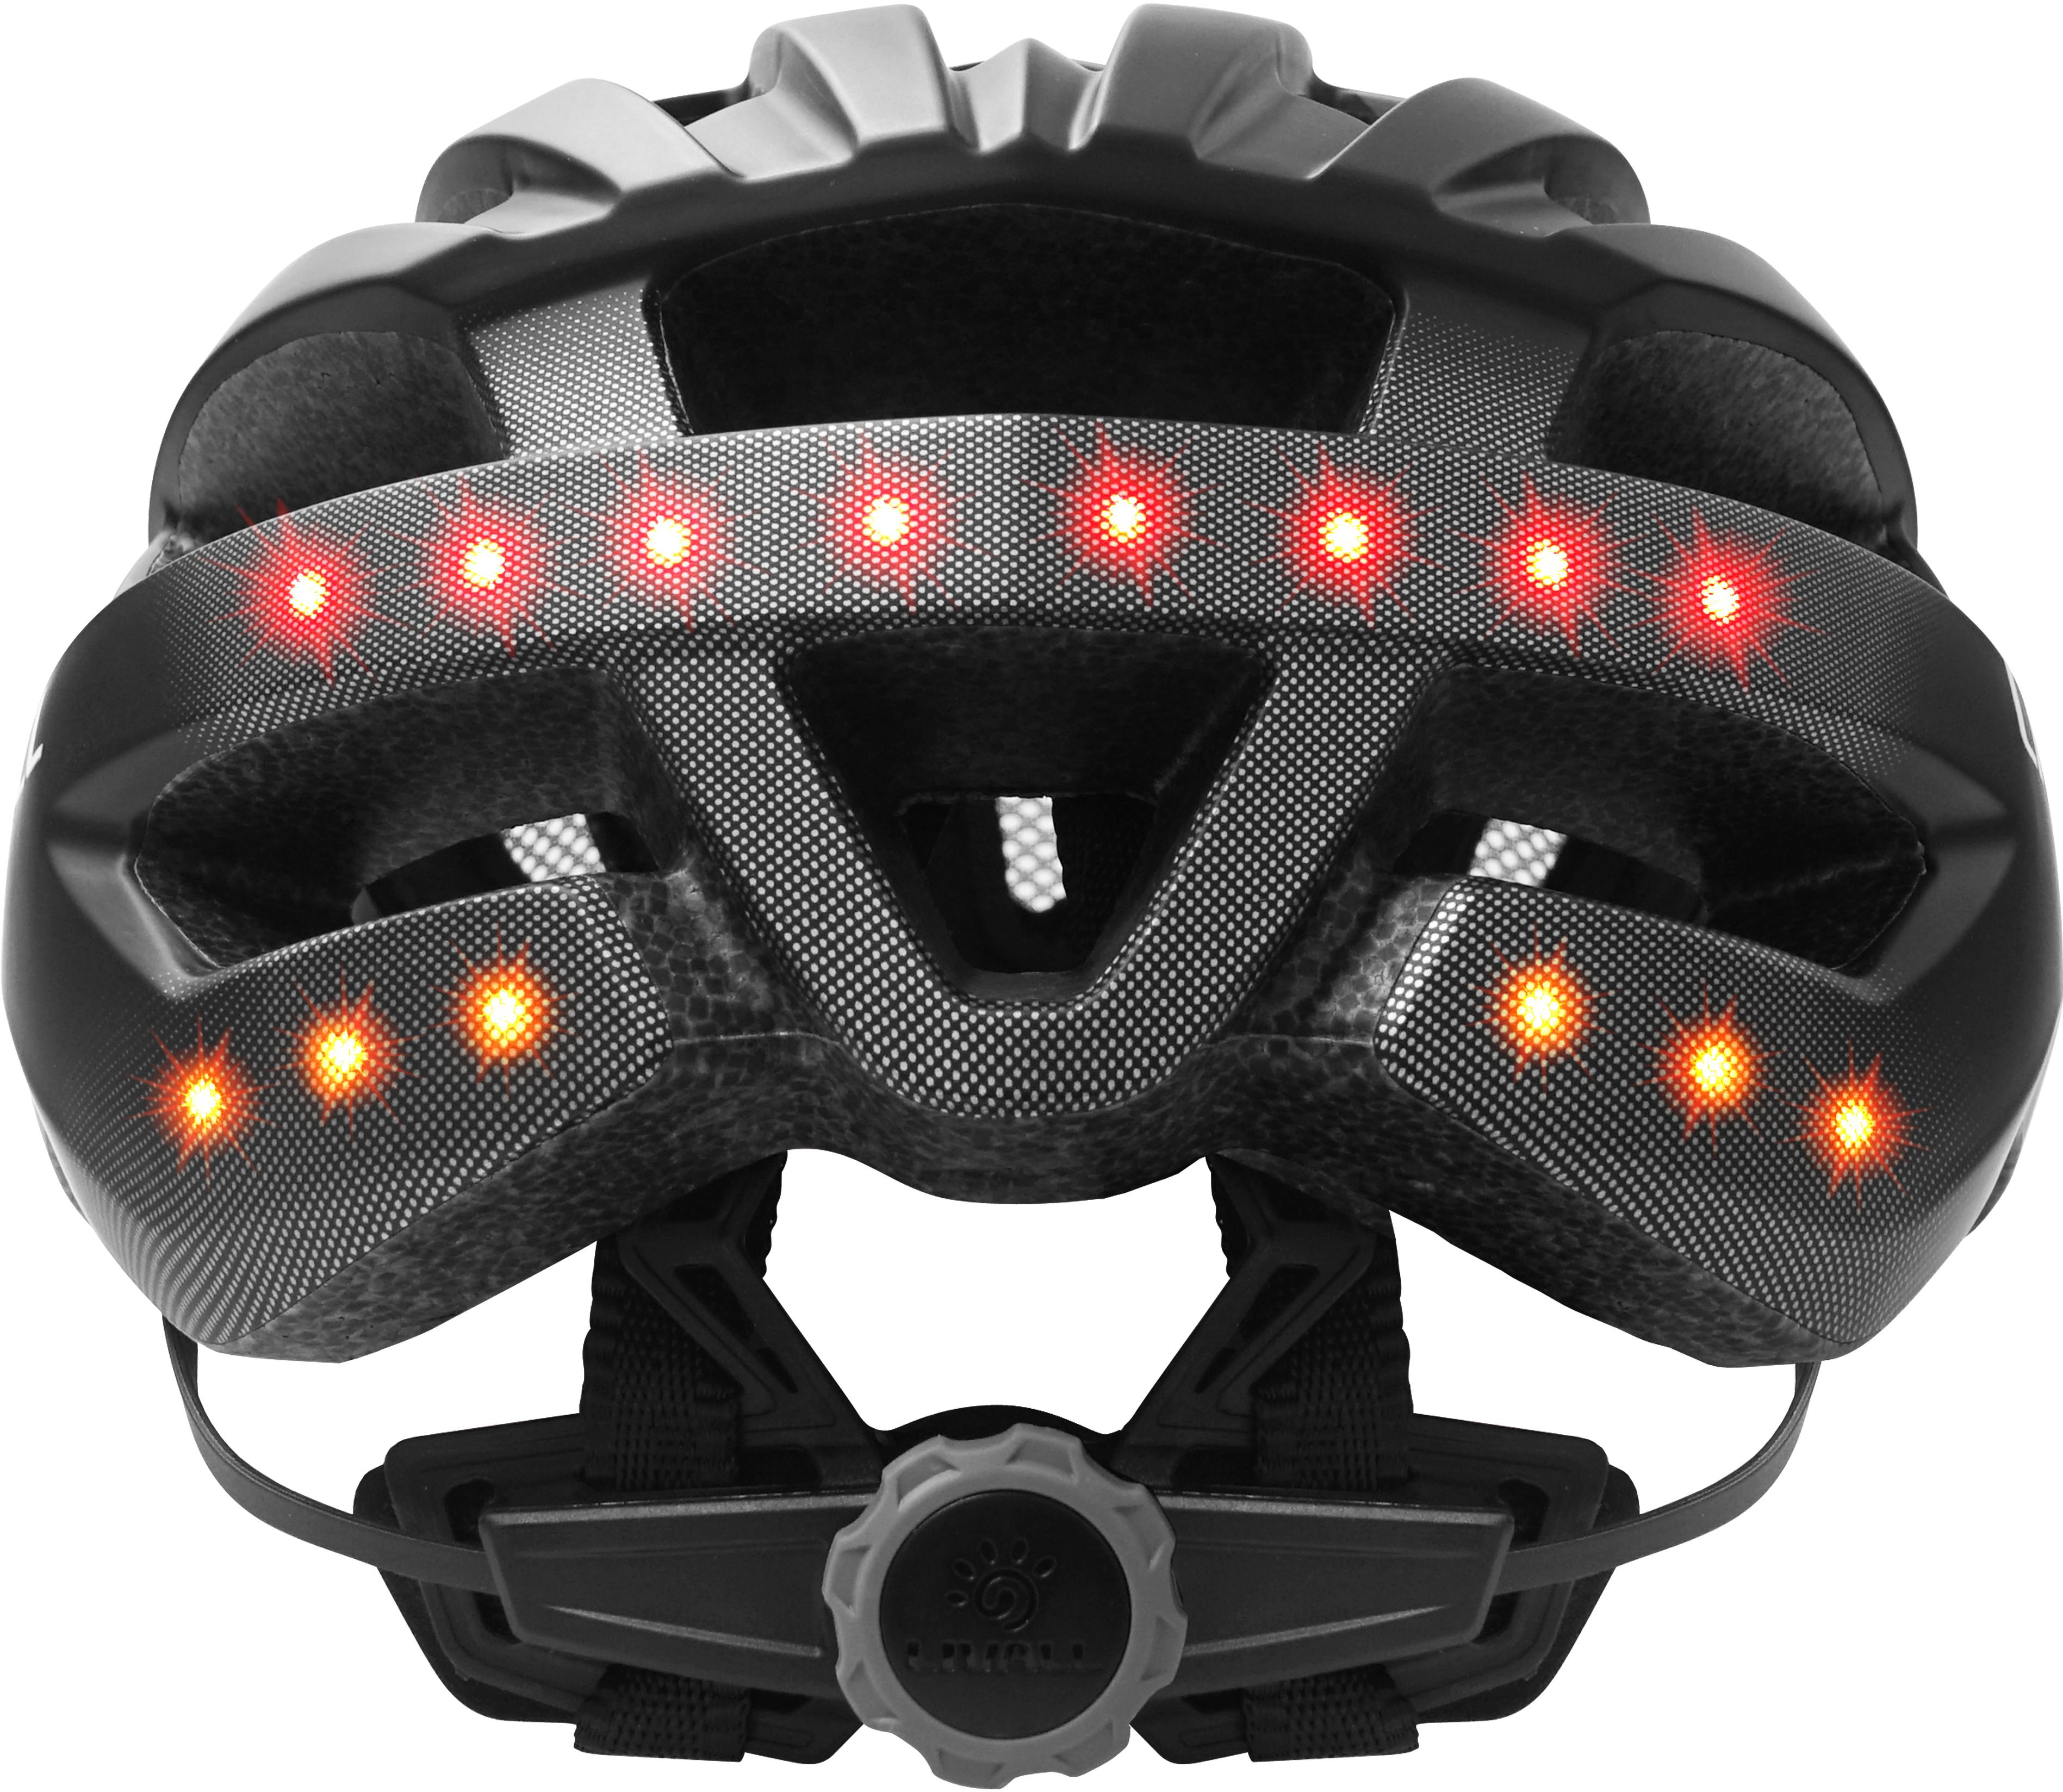 1c7f575df15 This smart bike helmet can send an emergency text in event of ...